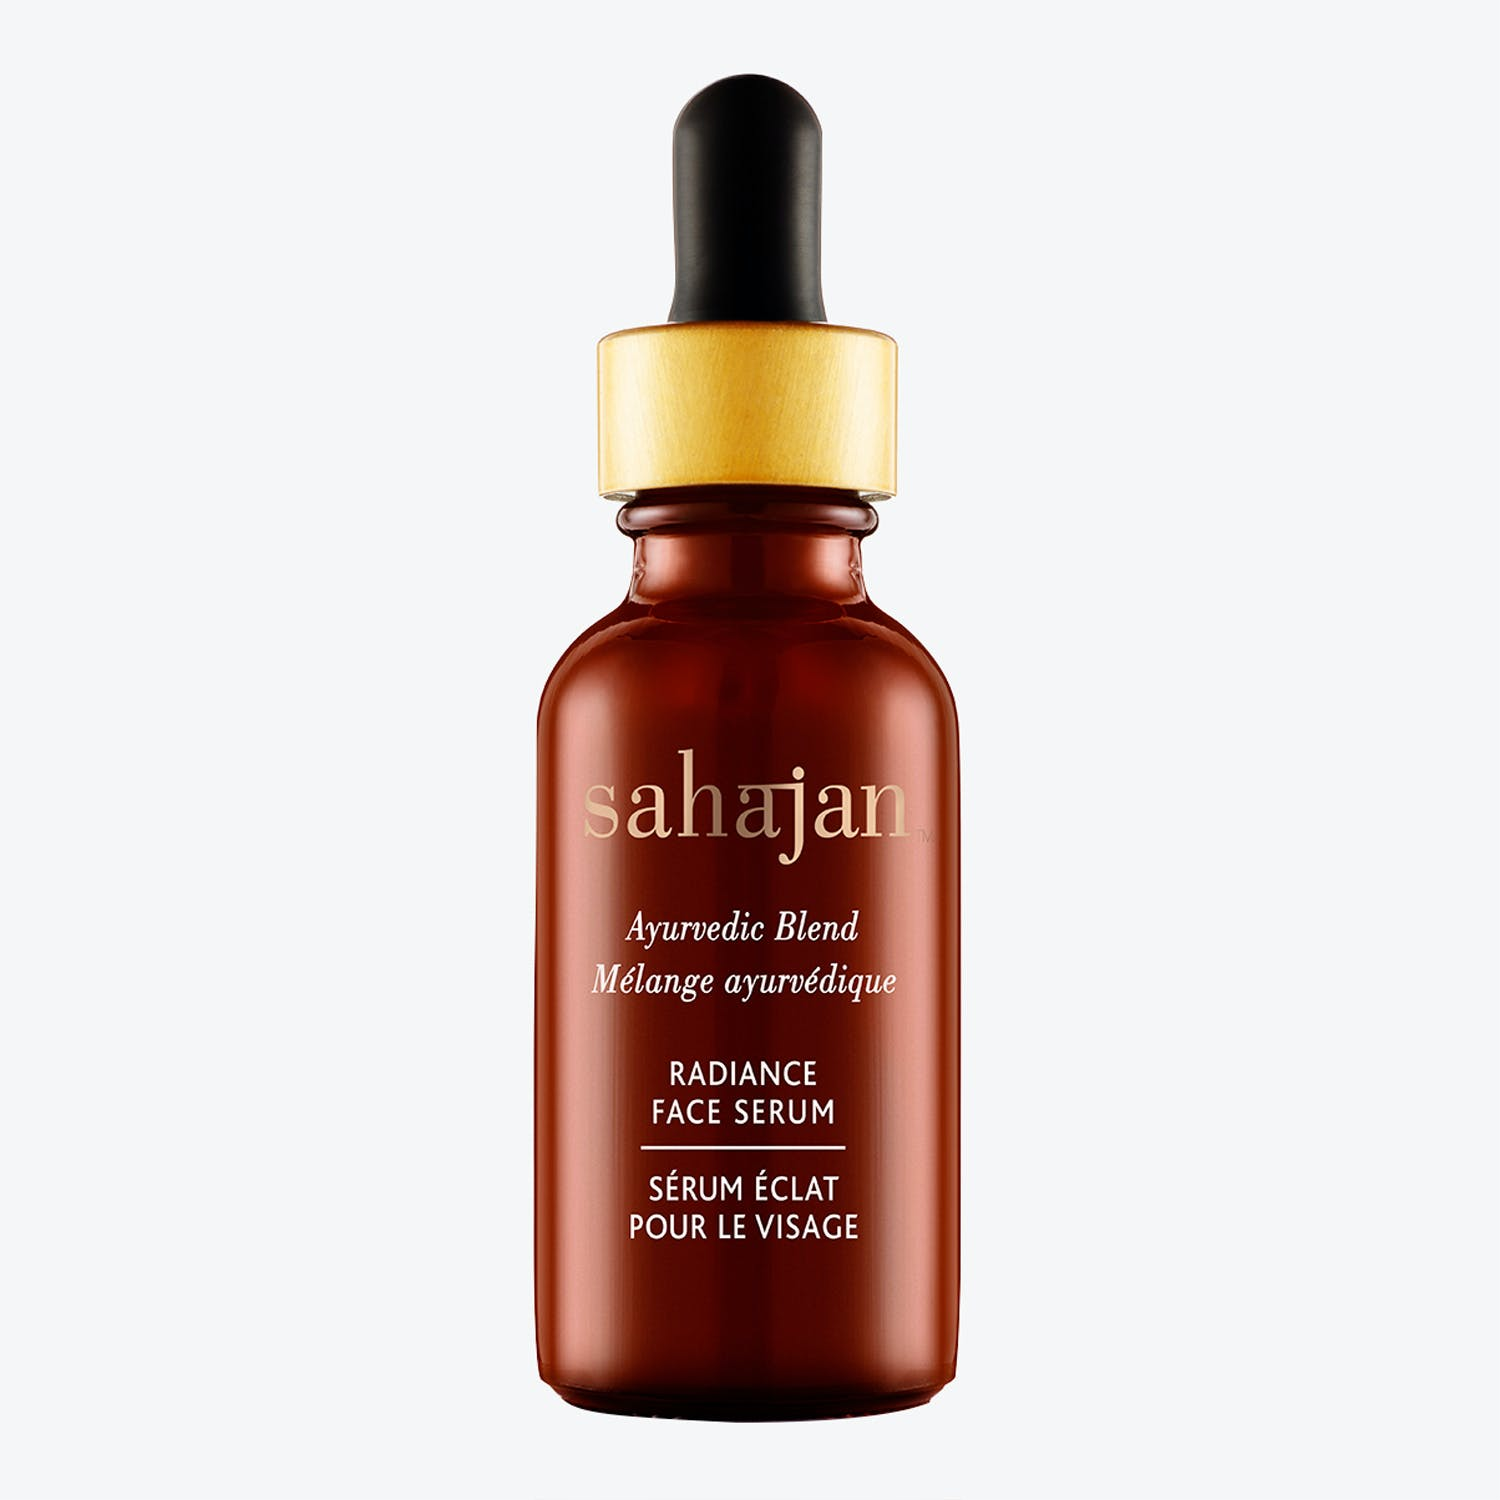 Sahajan Radiance Face Serum